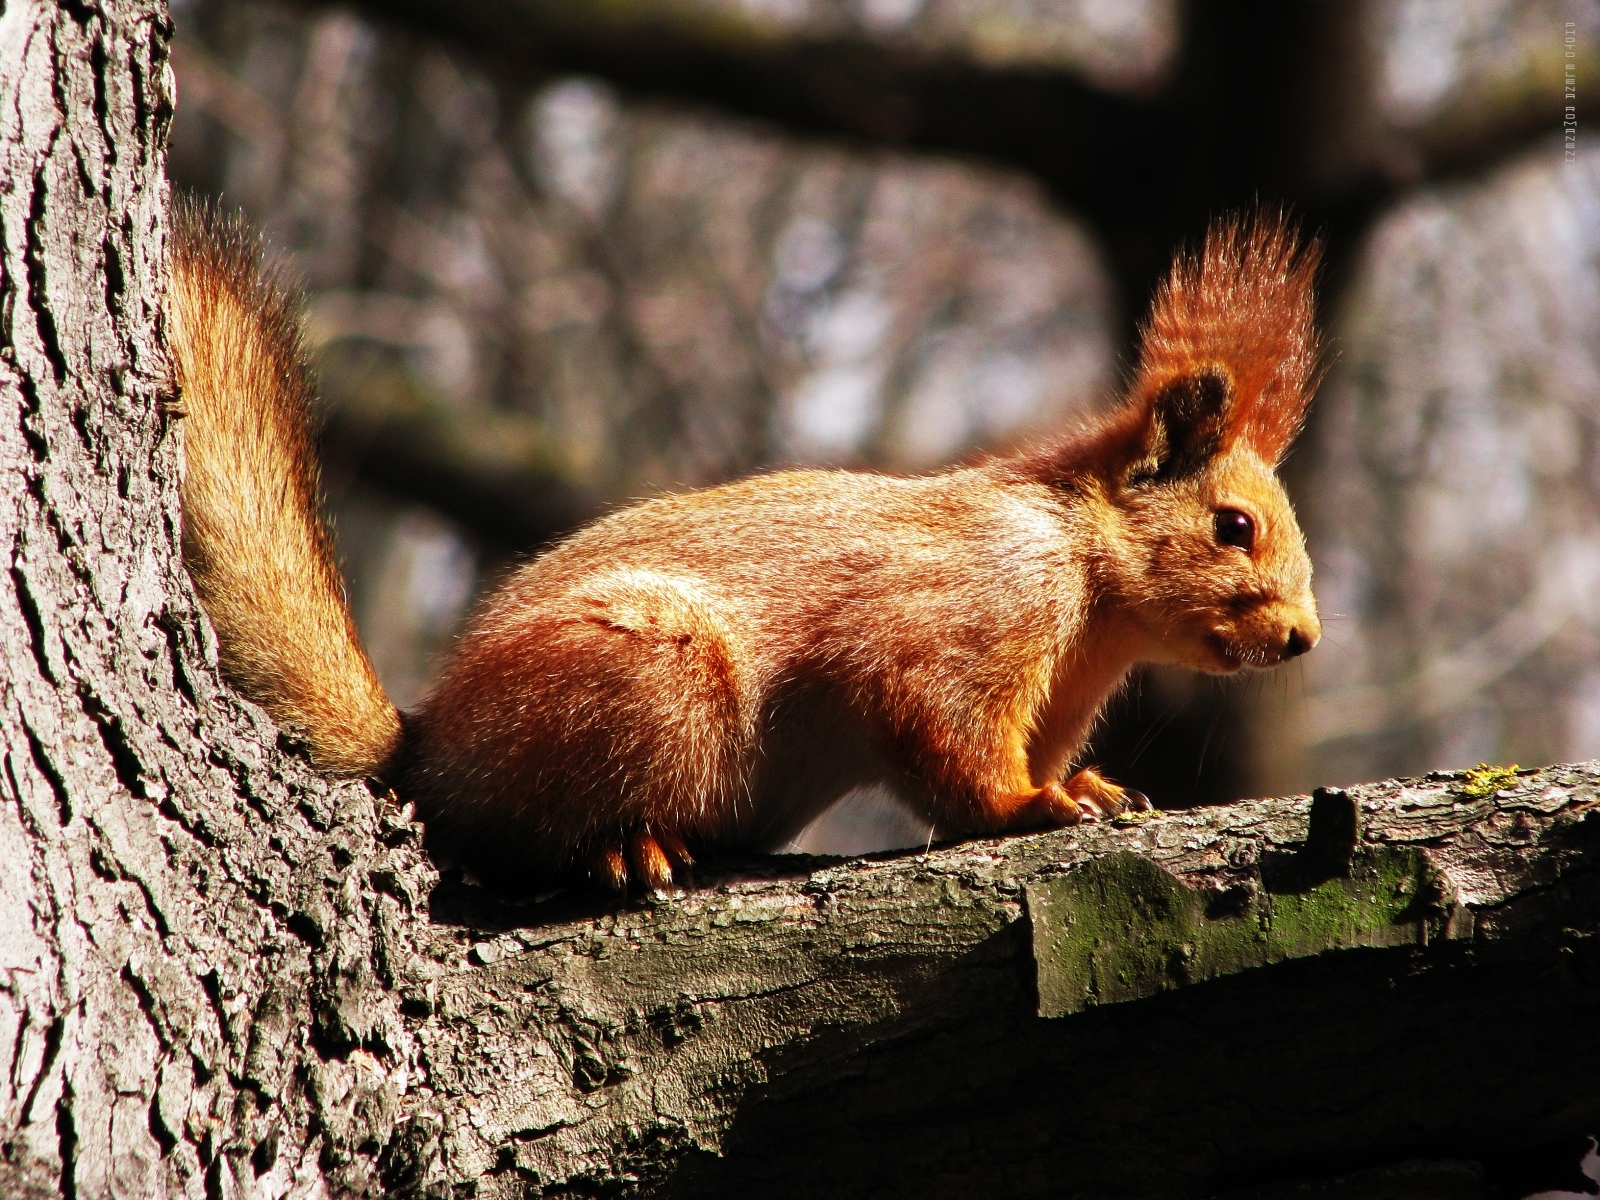 Download mobile wallpaper Animals, Nature, Squirrel for free.